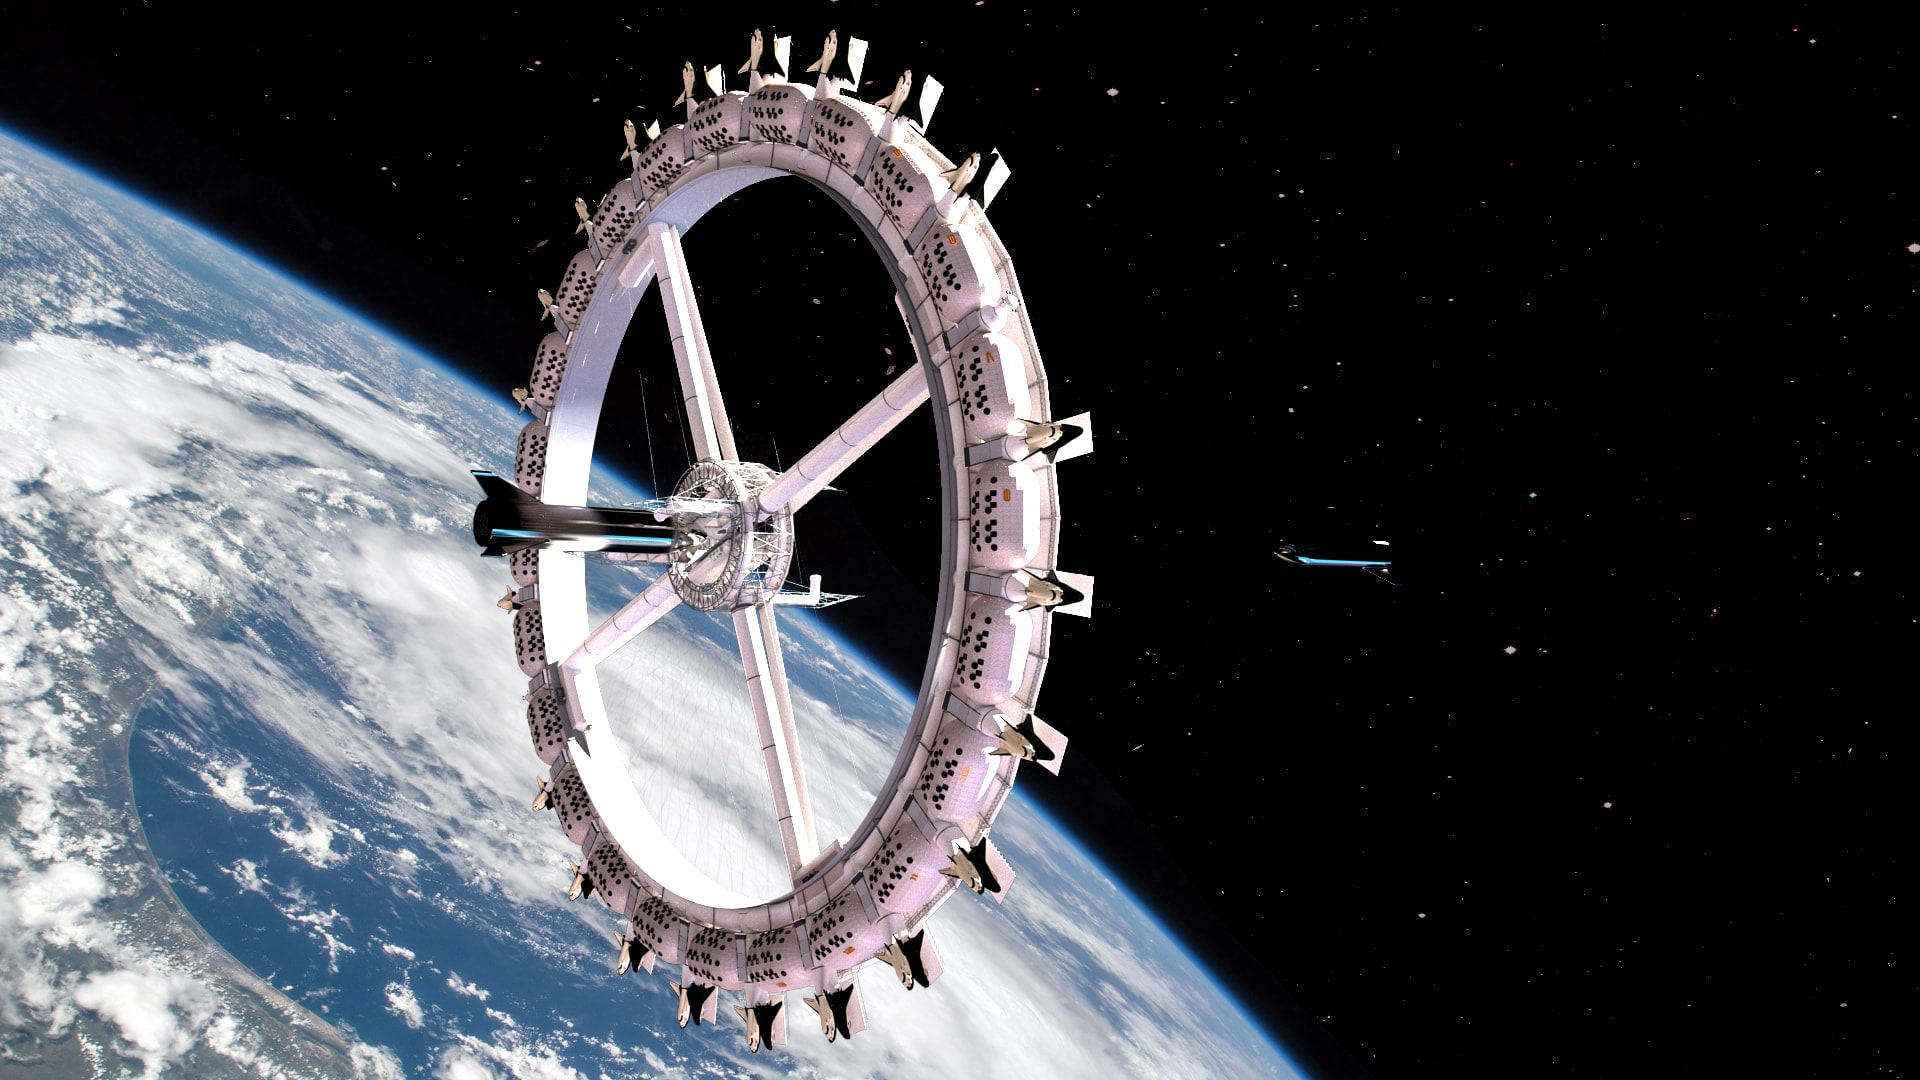 The World's First Space Hotel to Open in 2027